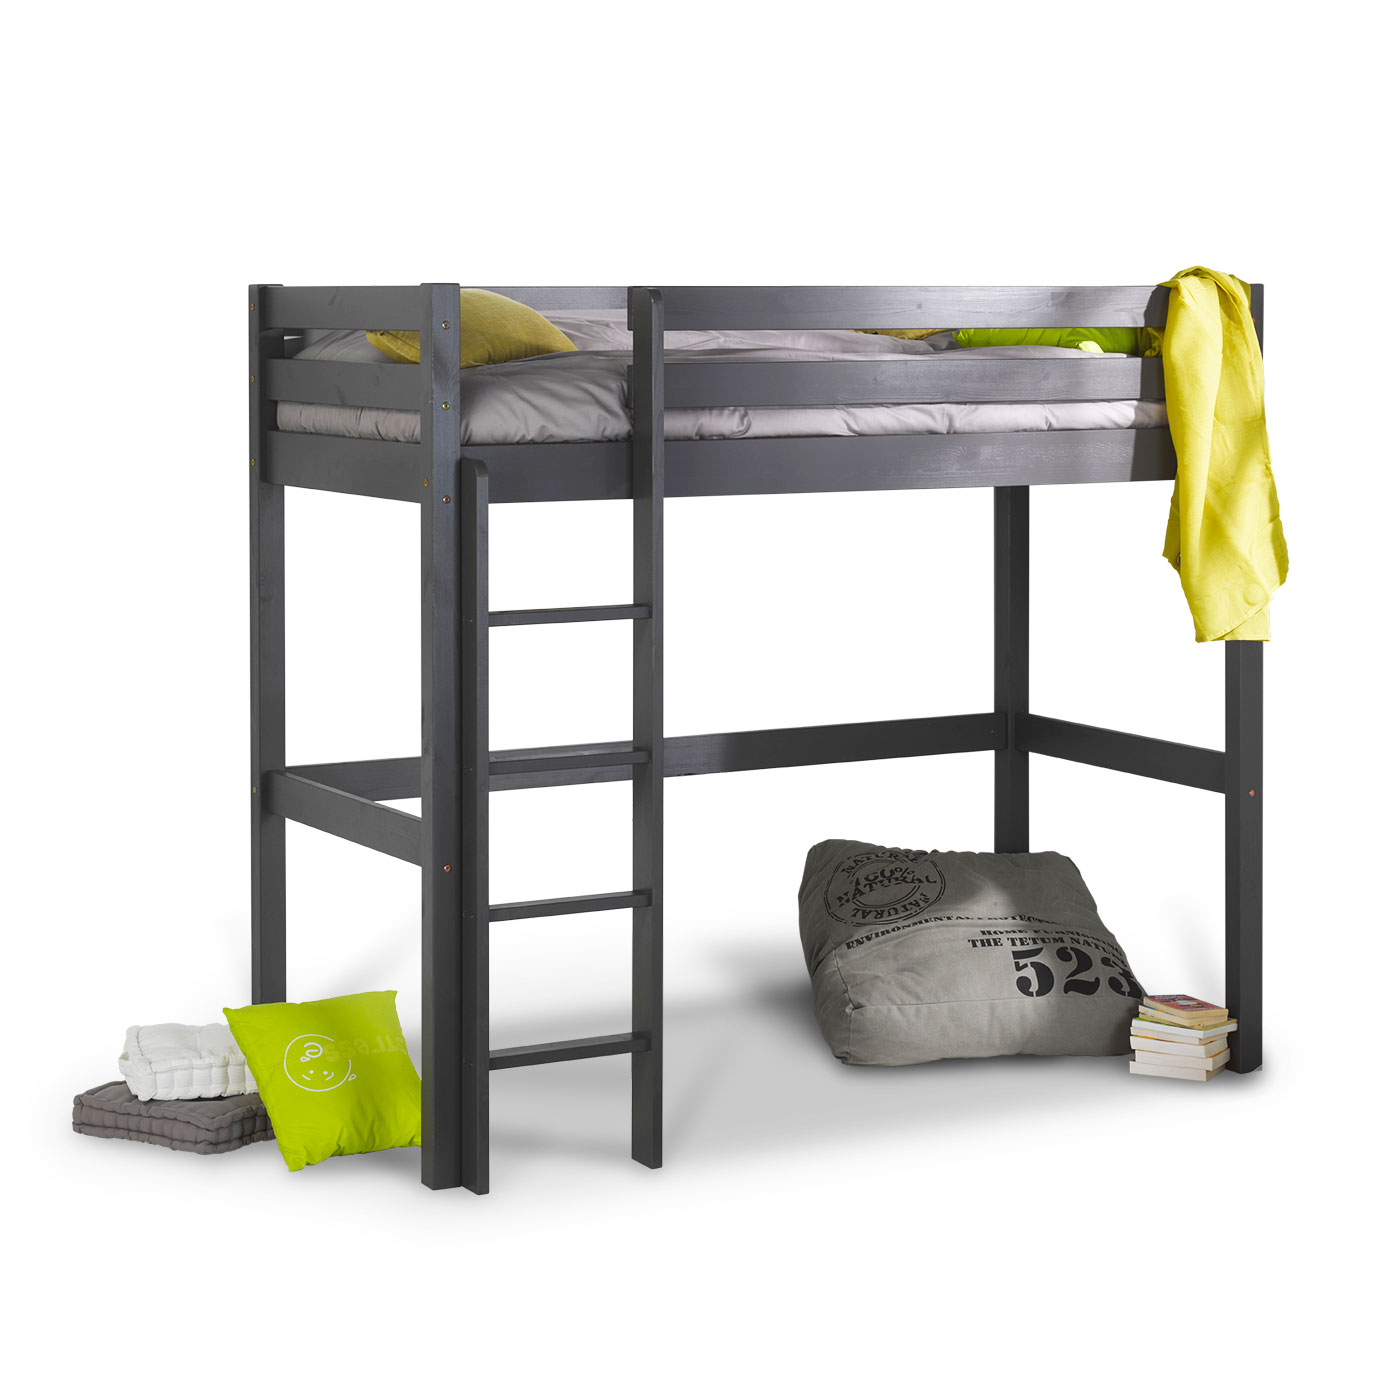 Lit mezzanine enfant wood gris anthracite idkid 39 s for Lit mezzanine enfant